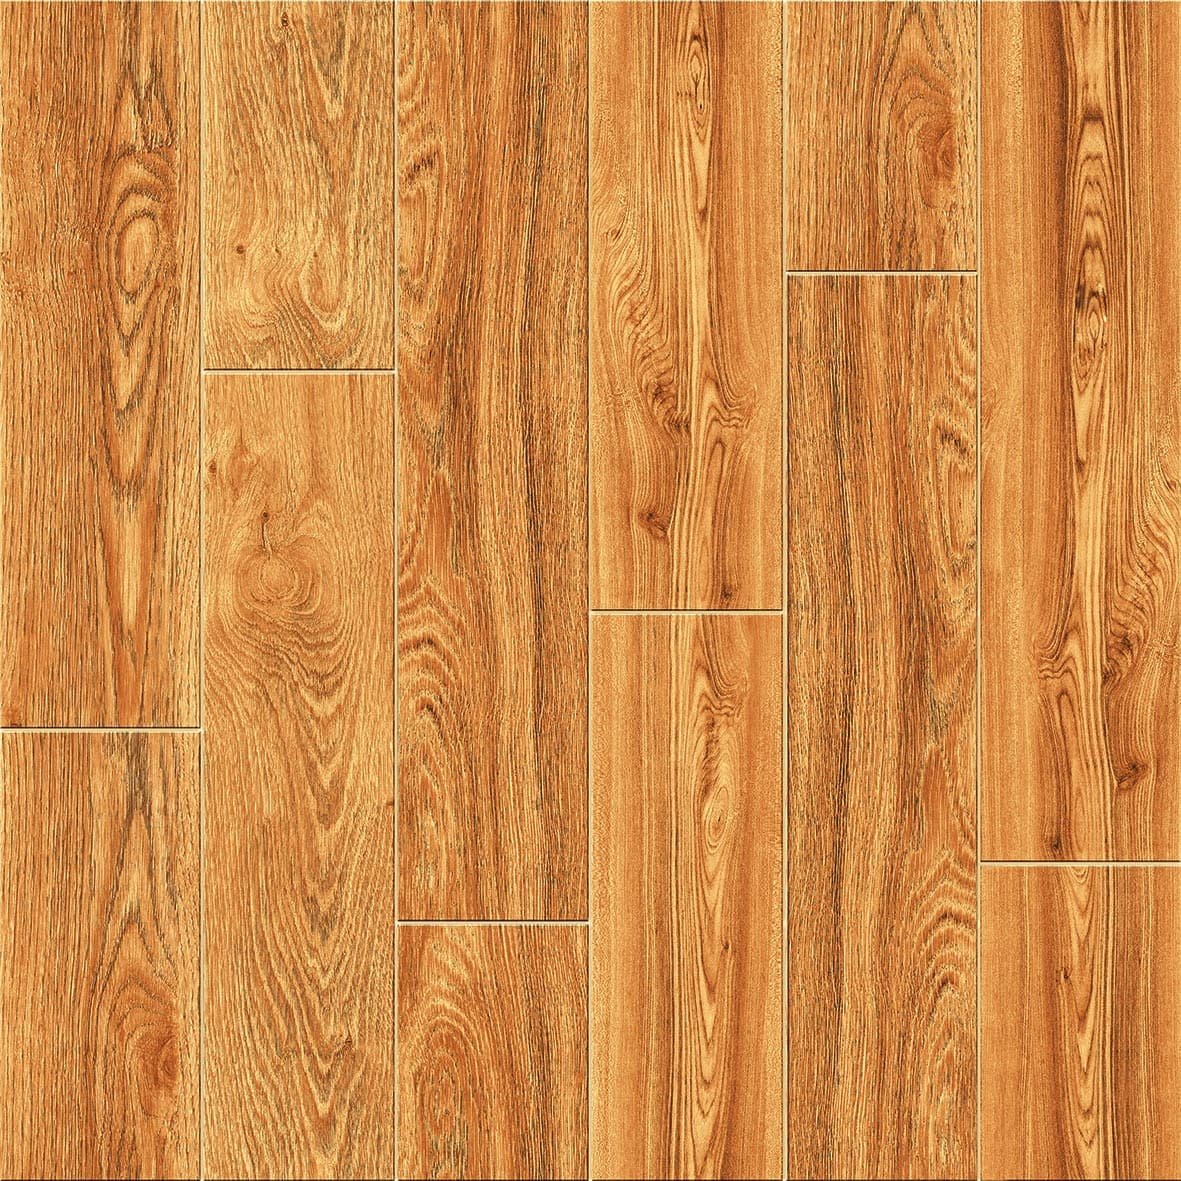 Wooden wood polished porcelain floor tile tiles 60x60 from hapro black color polished porcelain floor tiles 60x60 dailygadgetfo Images